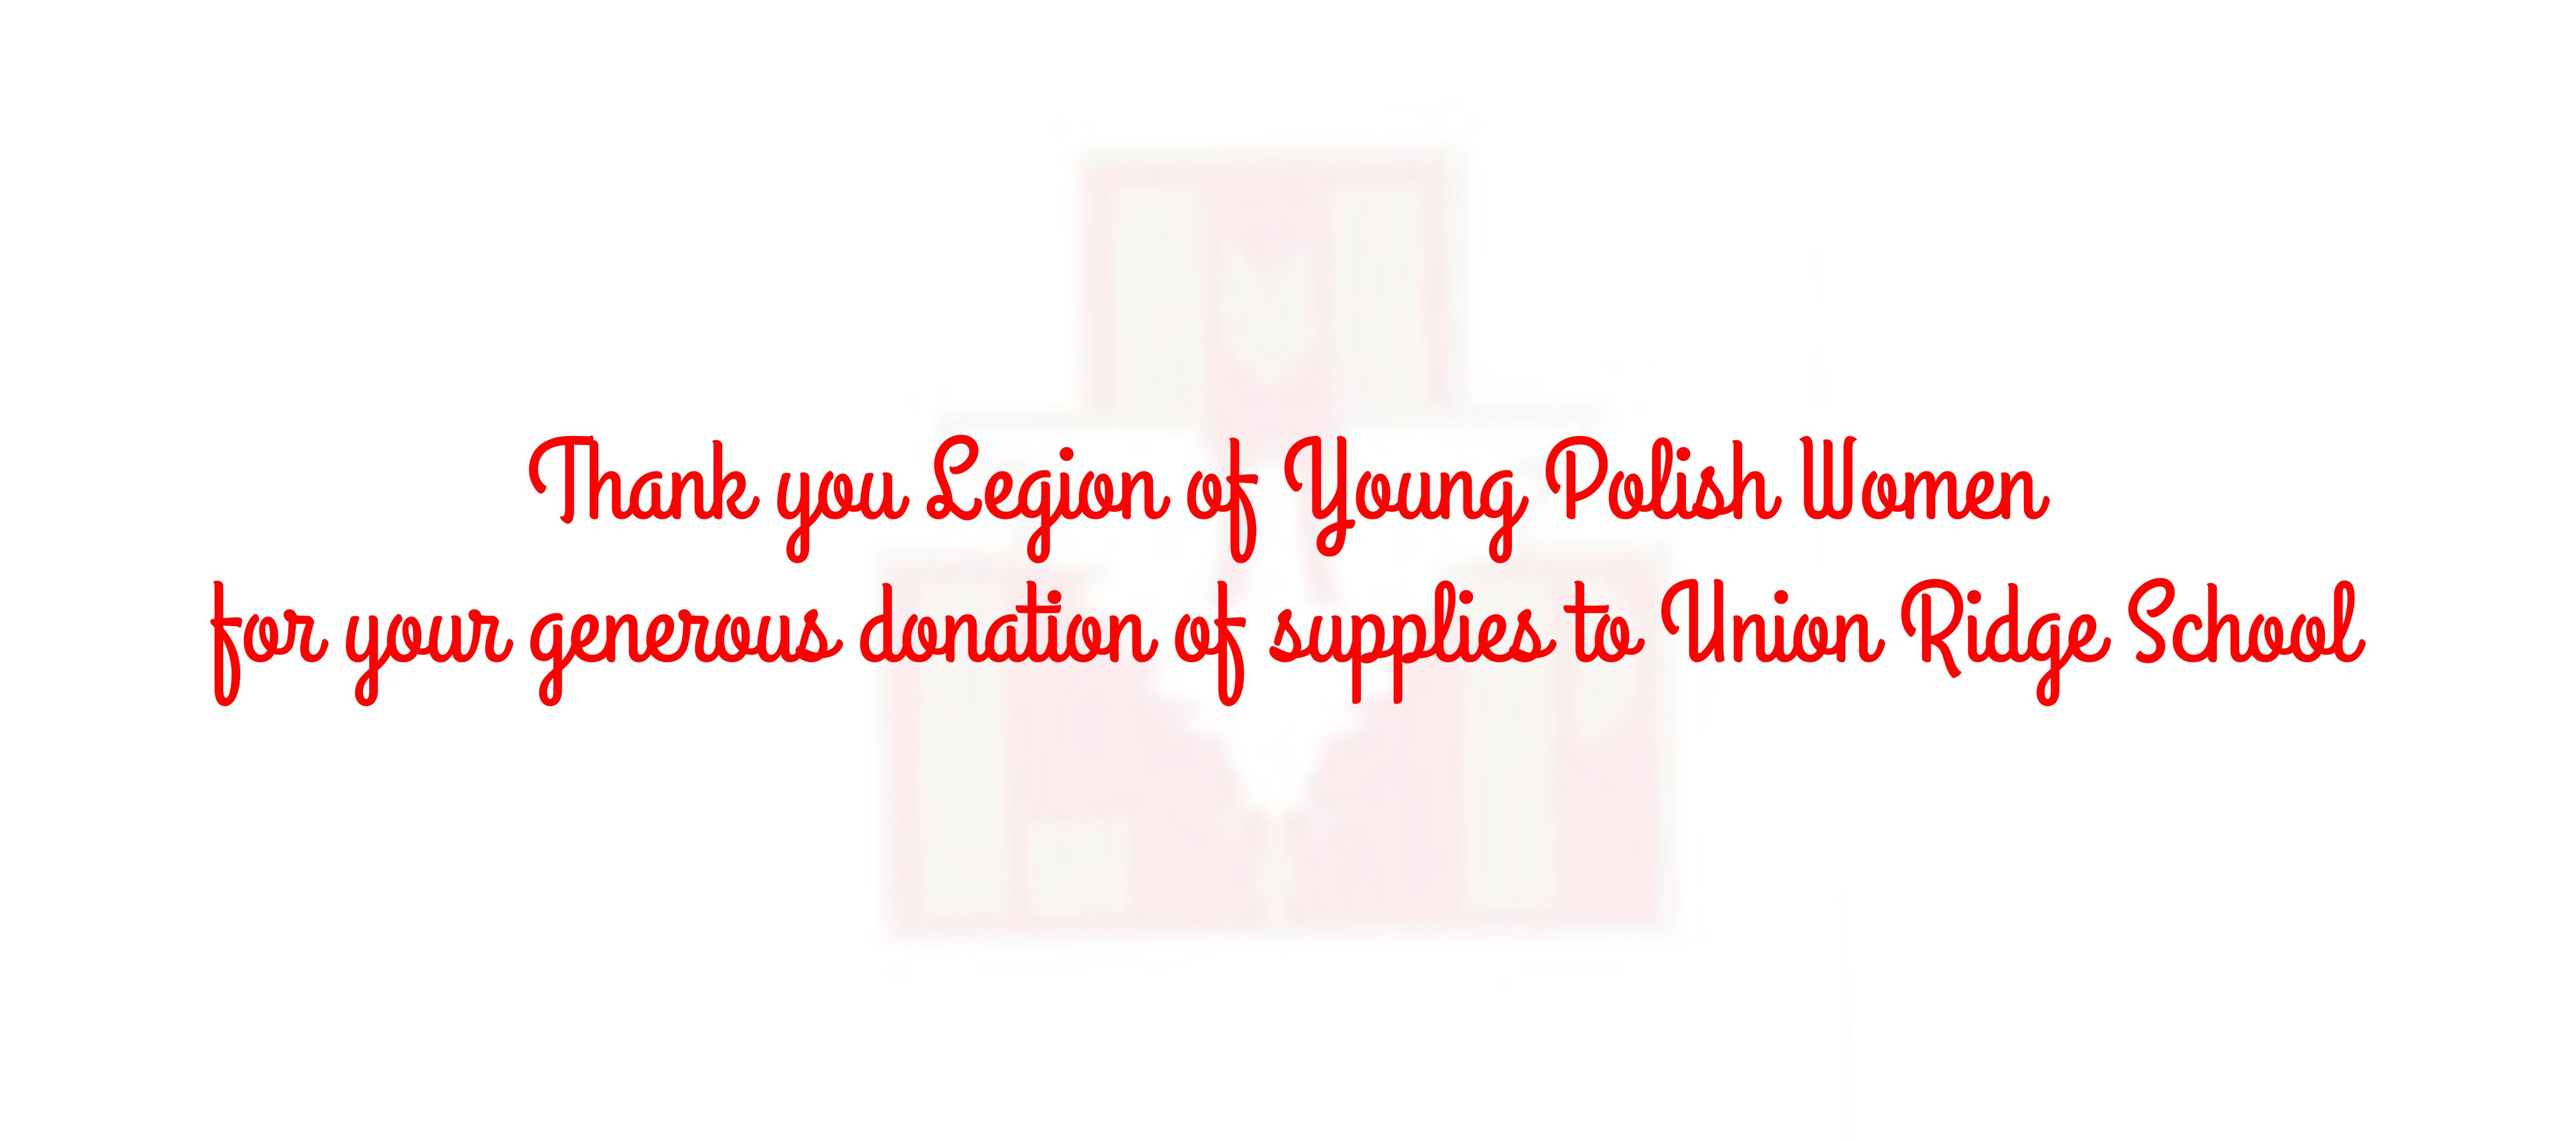 Thank you Legion of Young Polish Women